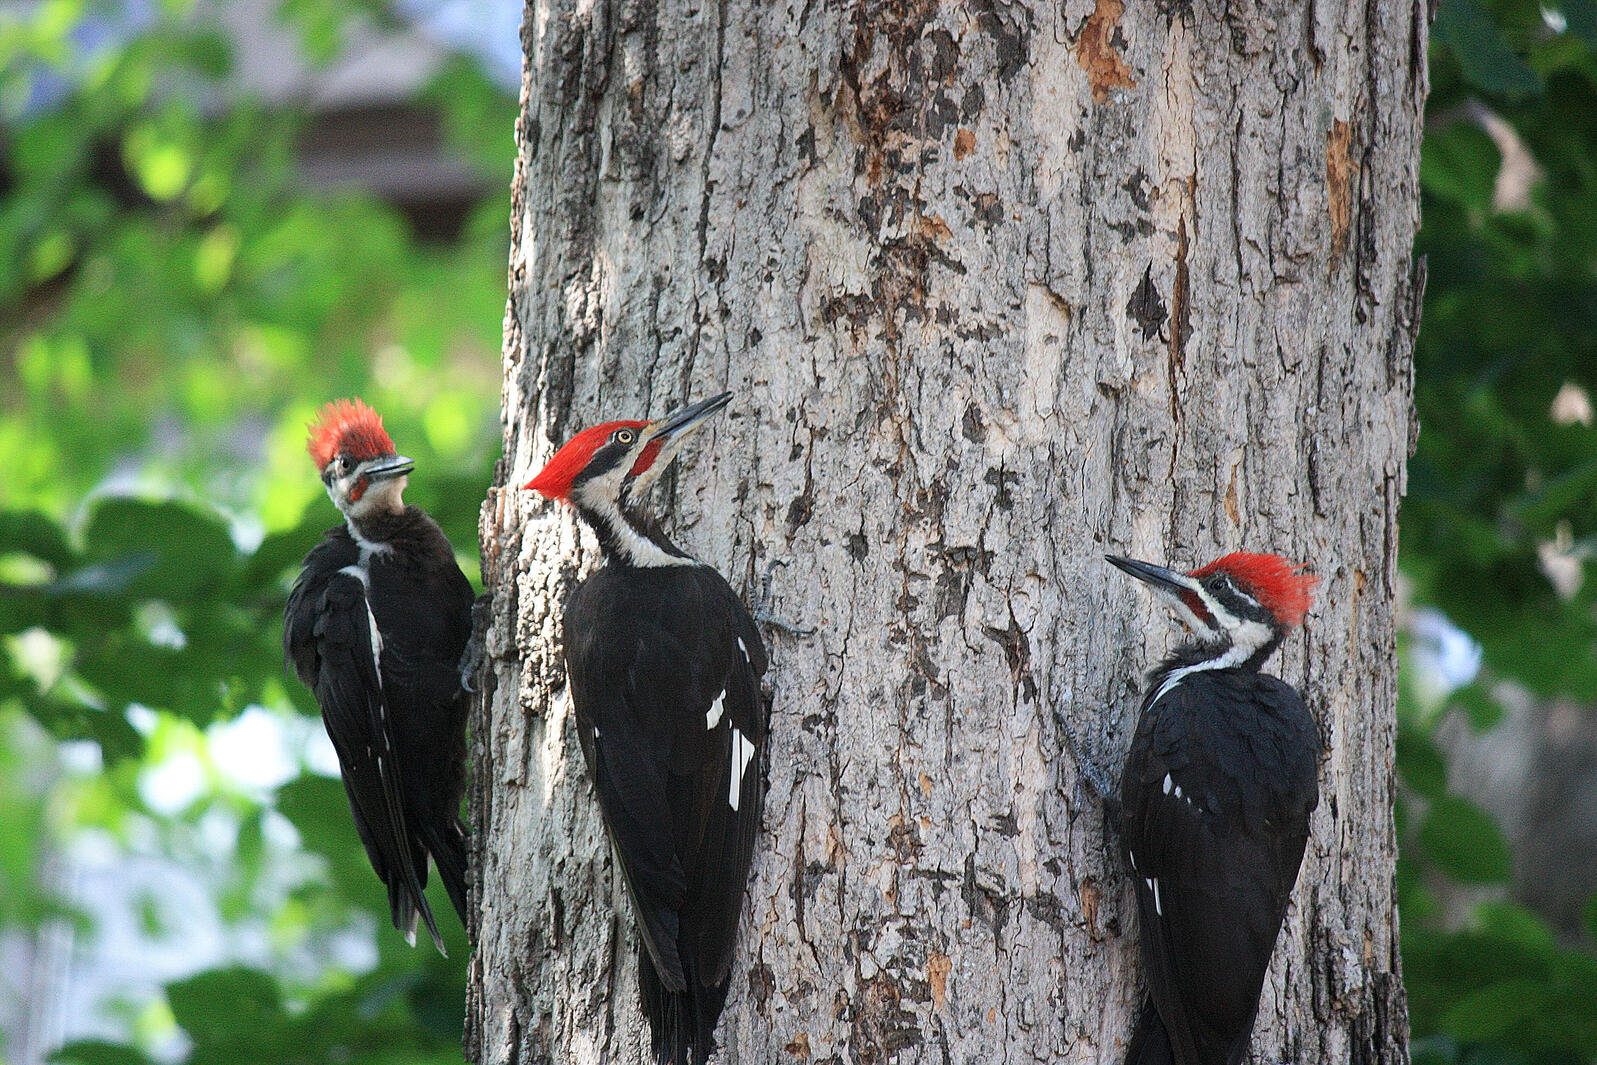 Pileated Woodpeckers use their long, sharp bills to excavate rectangular holes in trees as they hunt for ants other insects. Kendall Ronning/Audubon Photography Awards